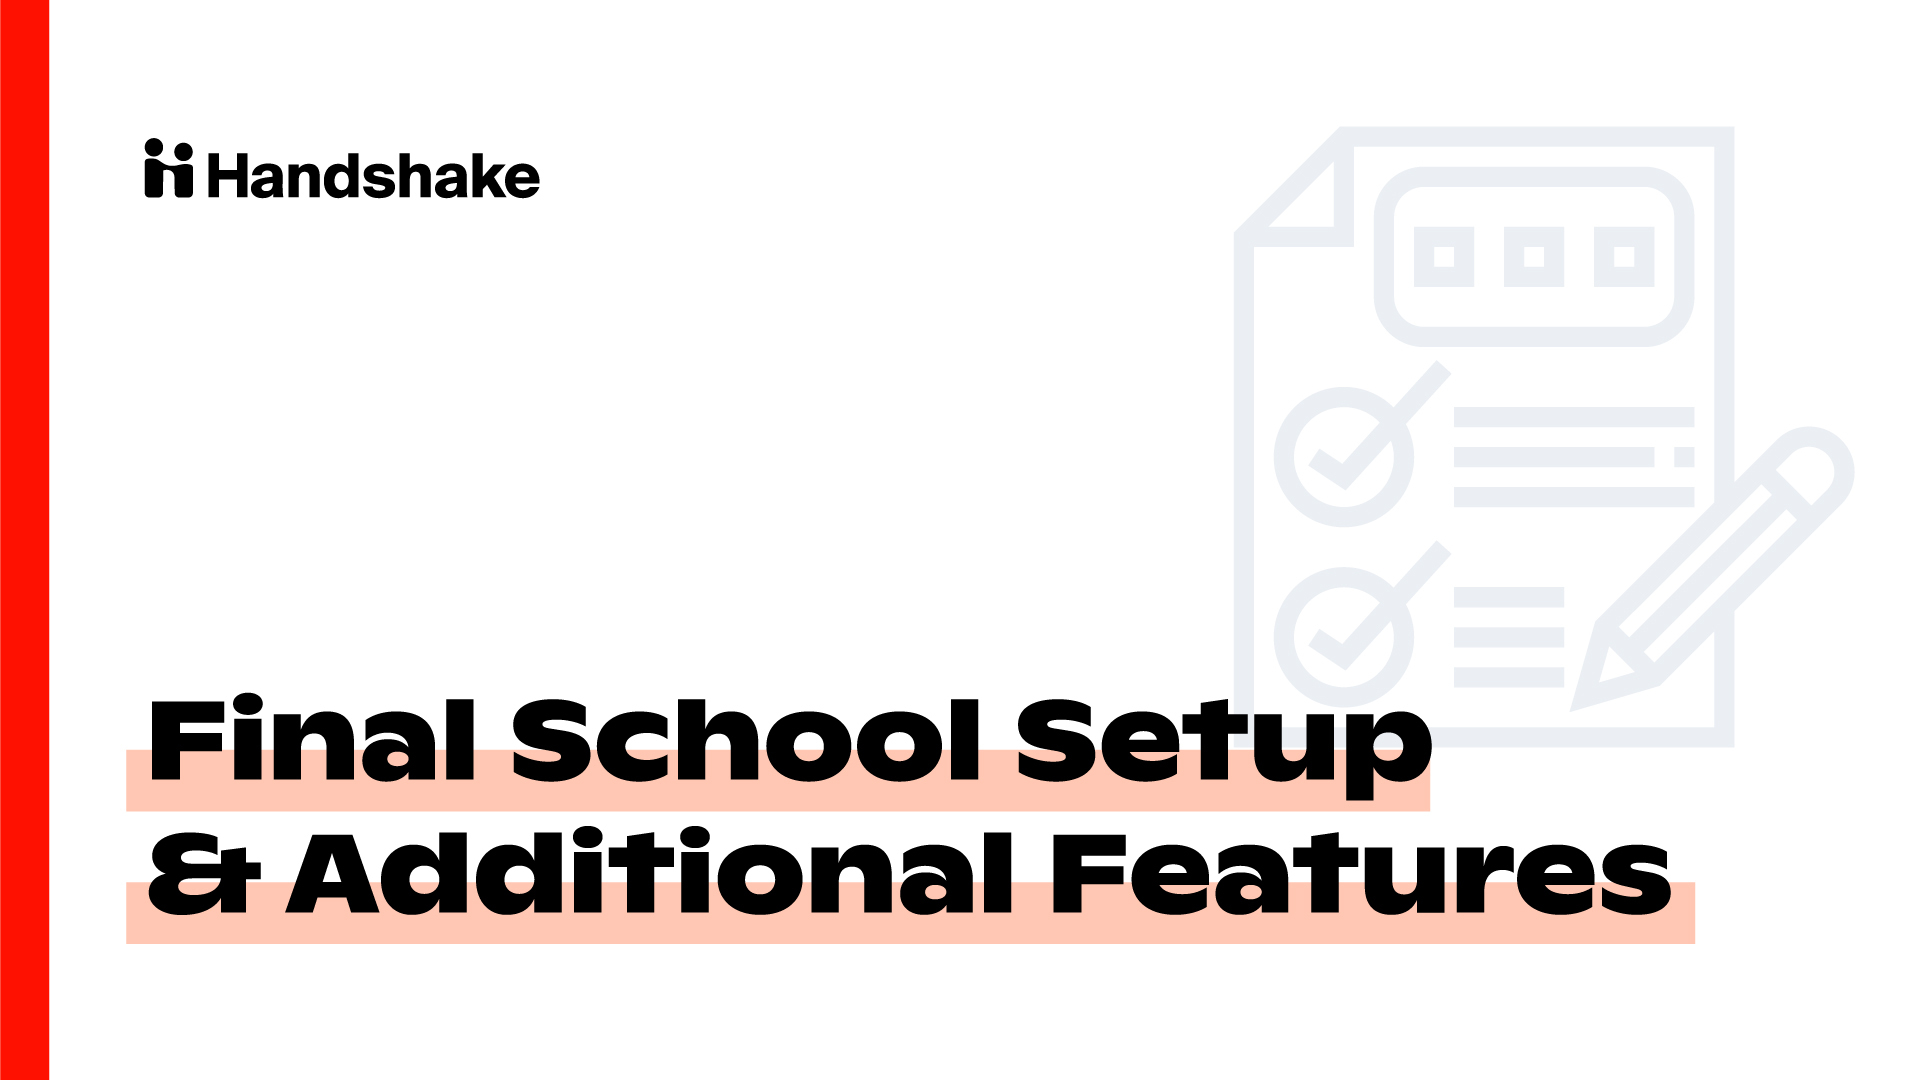 Milestone 7: Final School Setup and Additional Features